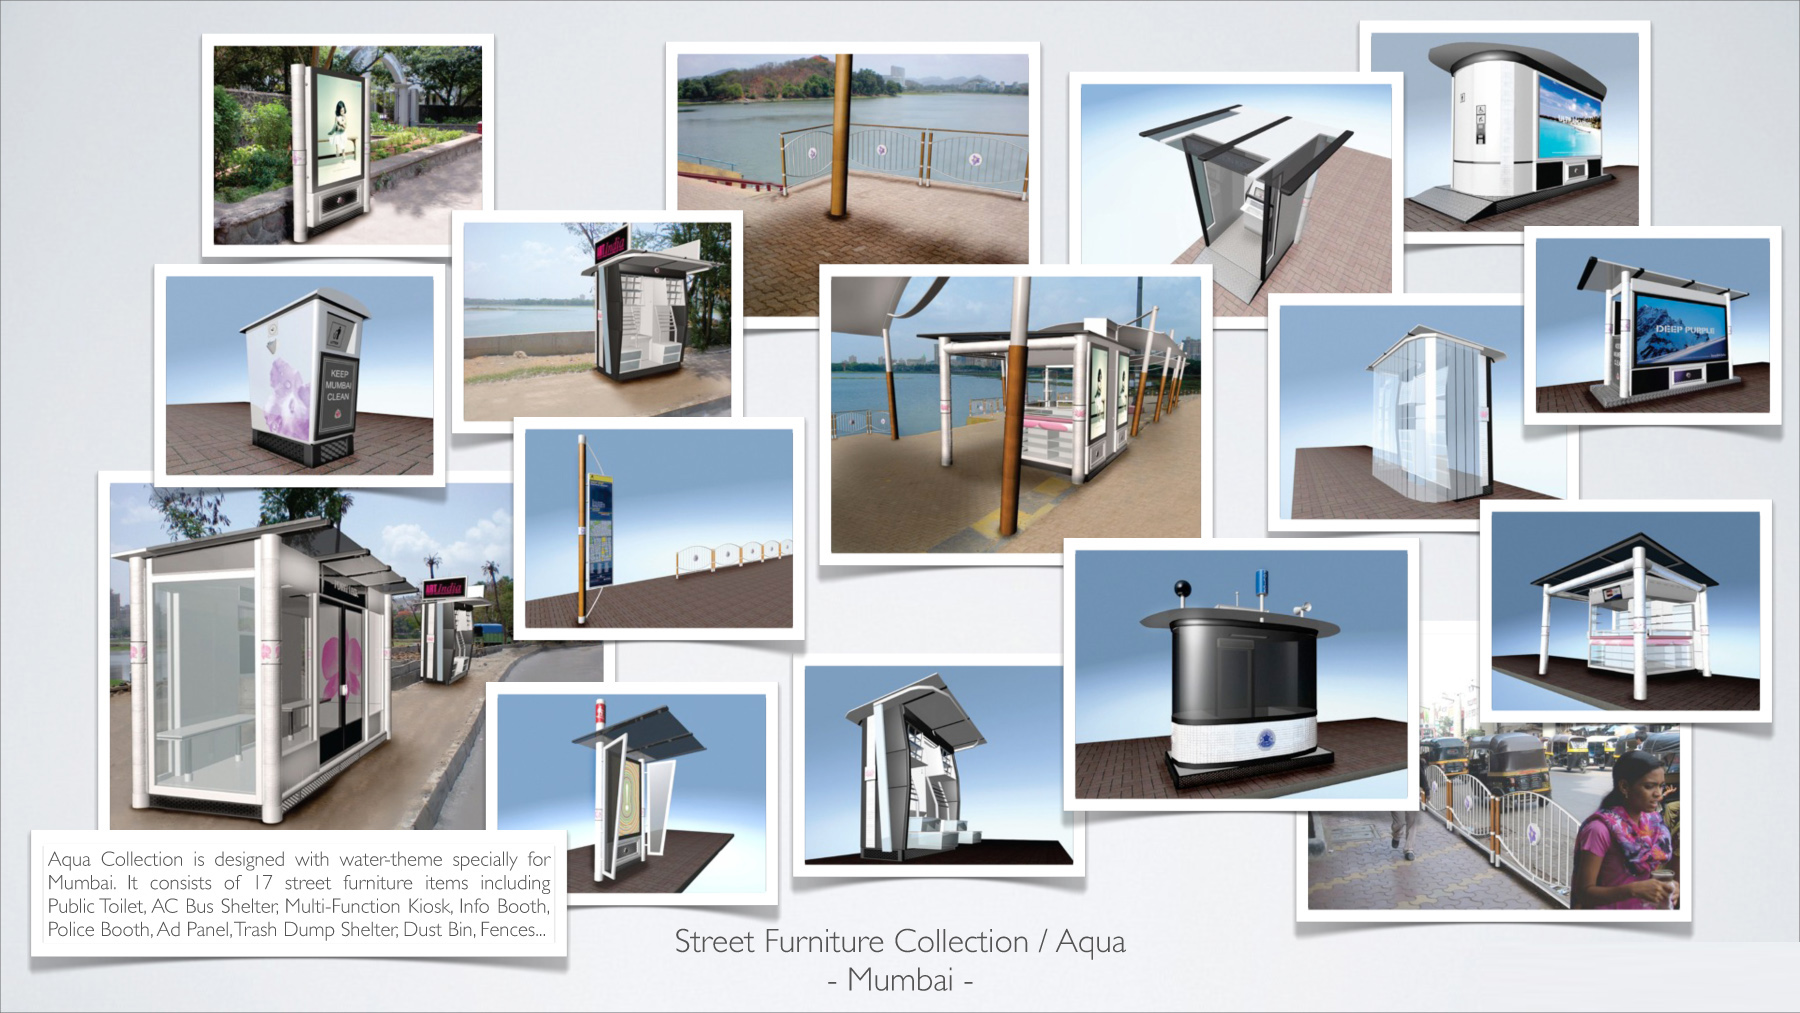 Awarded Complete set of Urban / Street Furniture Collection Design for  Mumbai, India